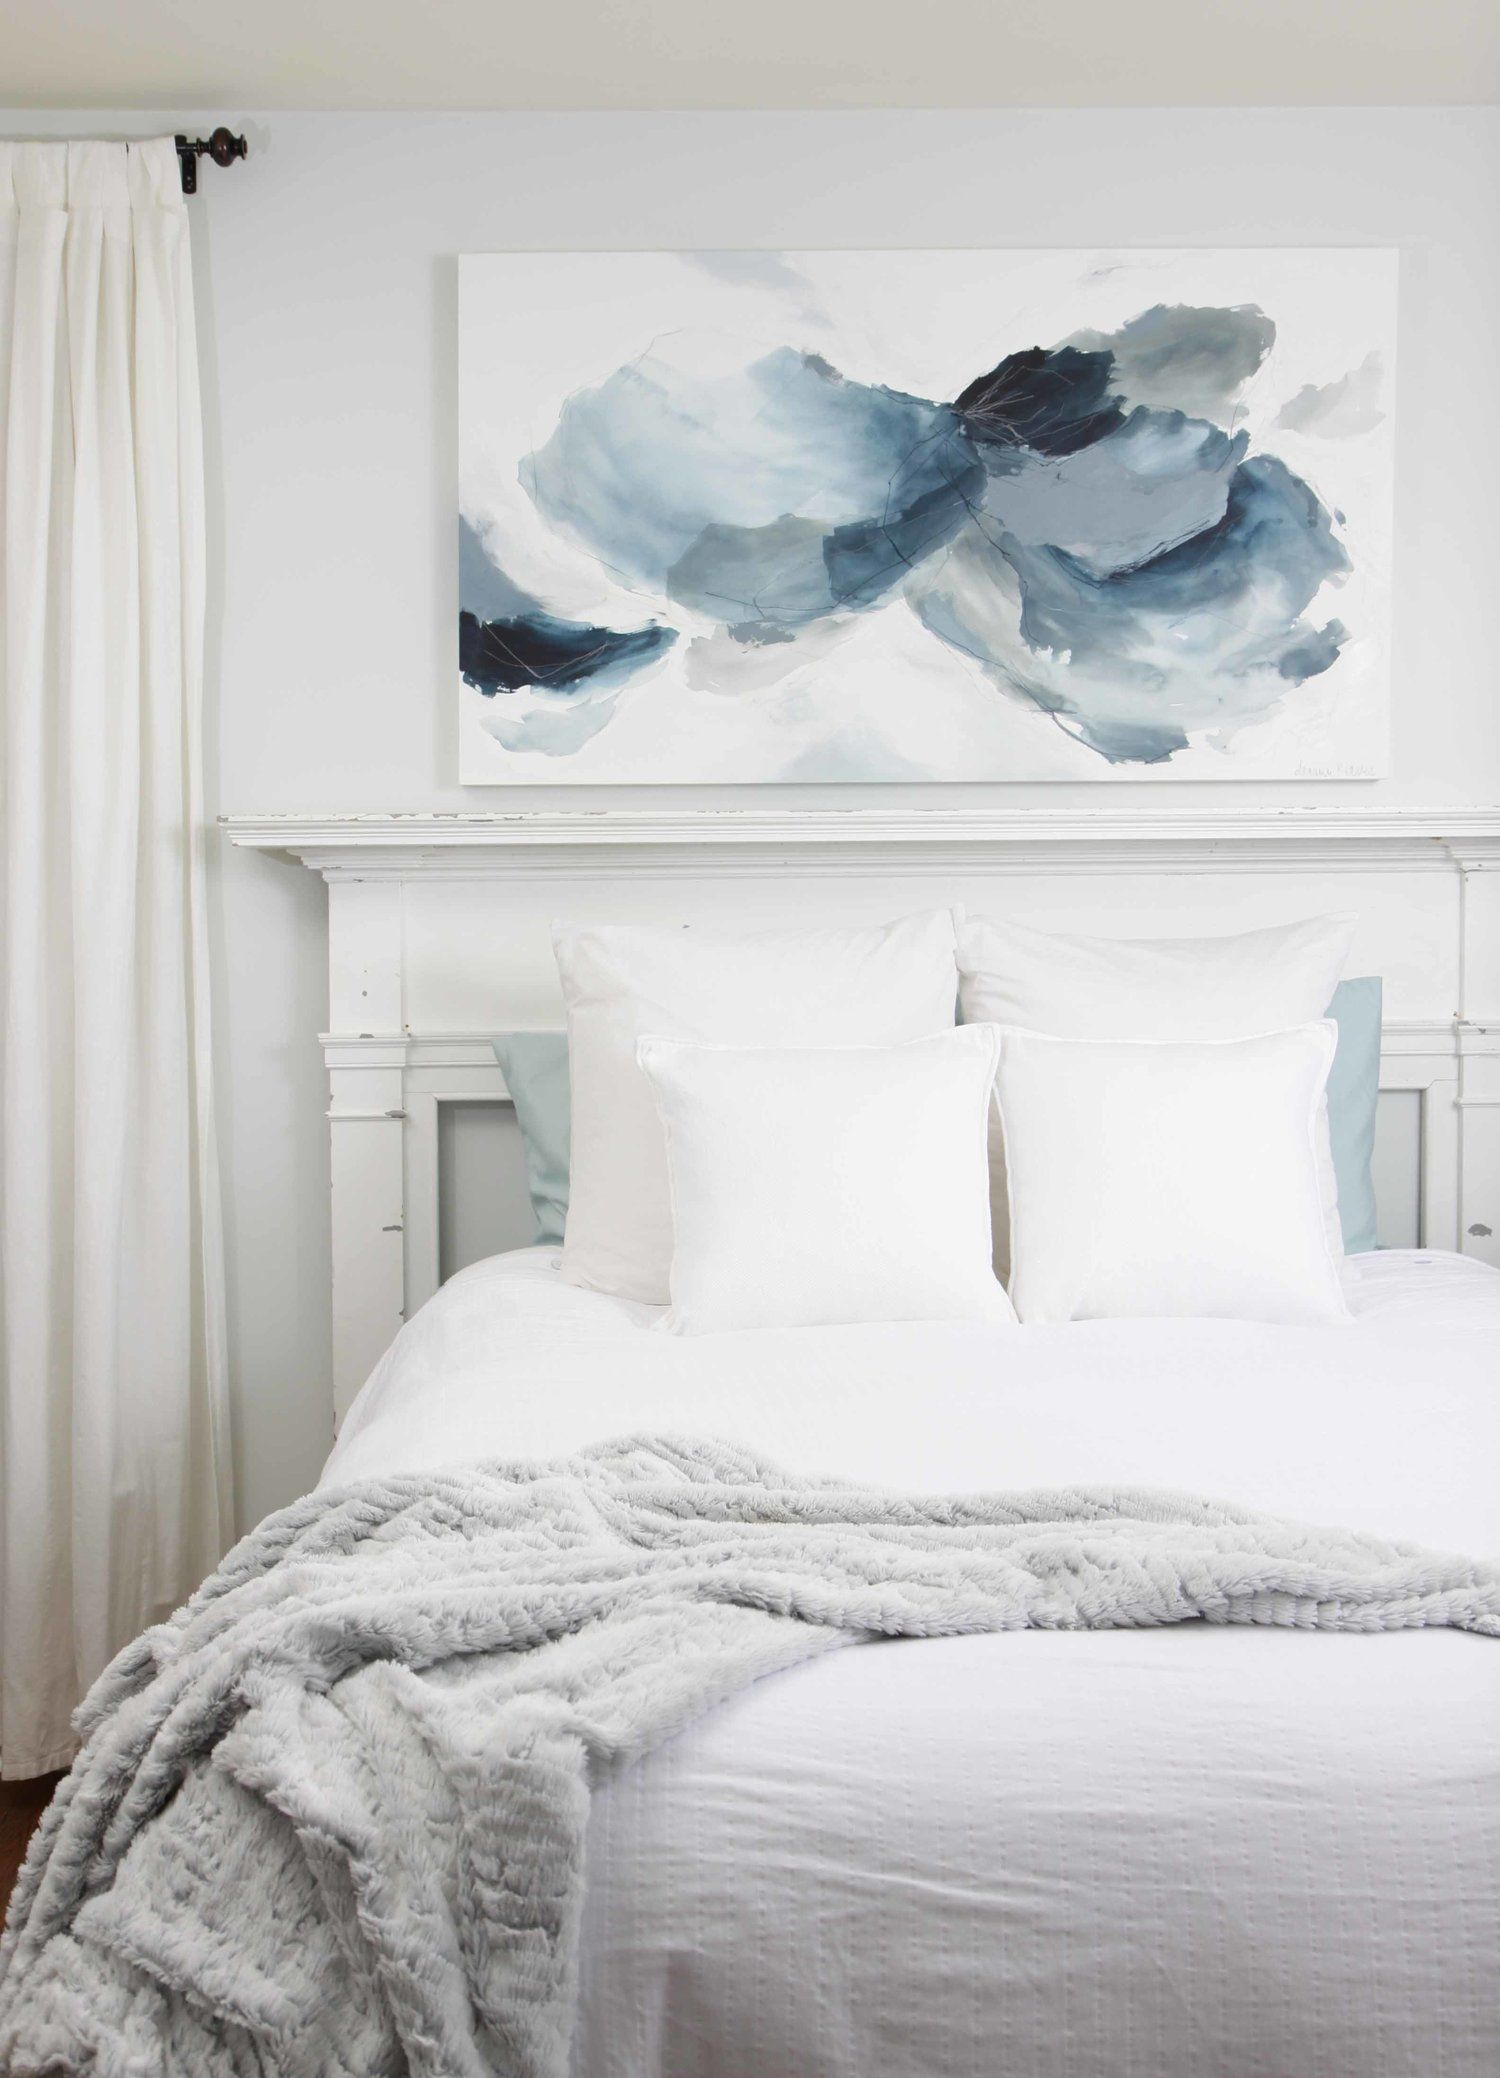 I Absolutely Love This 30 X 54 Abstract Painting In Soft And Soothing Blue And G Bedroom Wall Decor Above Bed Master Bedroom Wall Decor Bedroom Art Above Bed